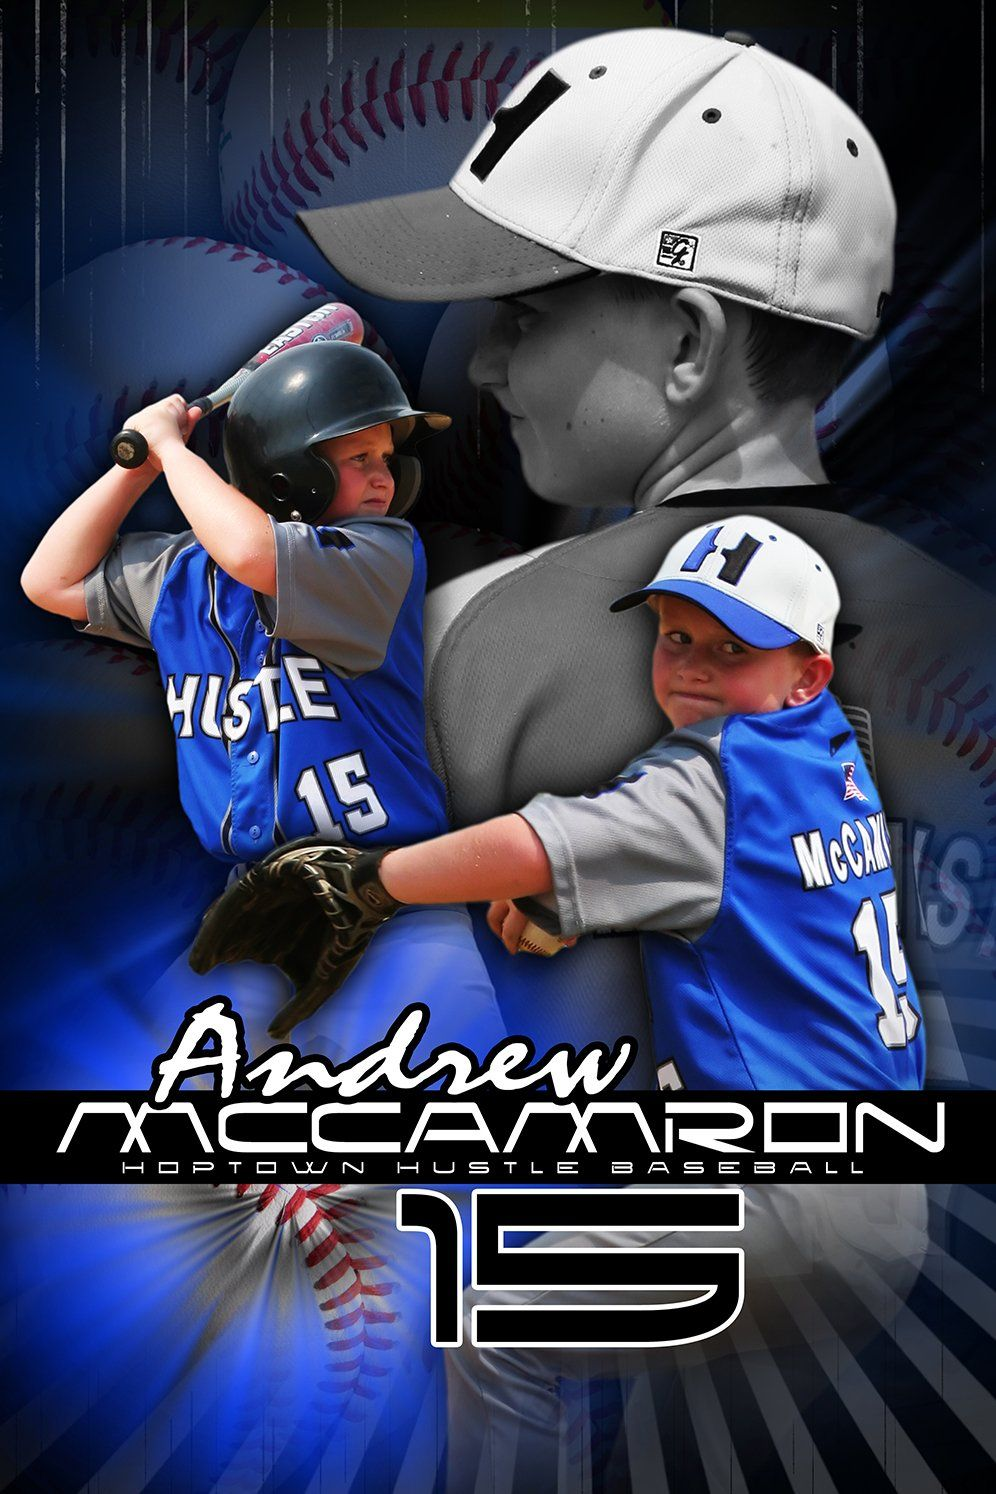 Baseball v.5 - Action Extraction Poster/Banner Downloadable Template Photo Solutions PSMGraphix